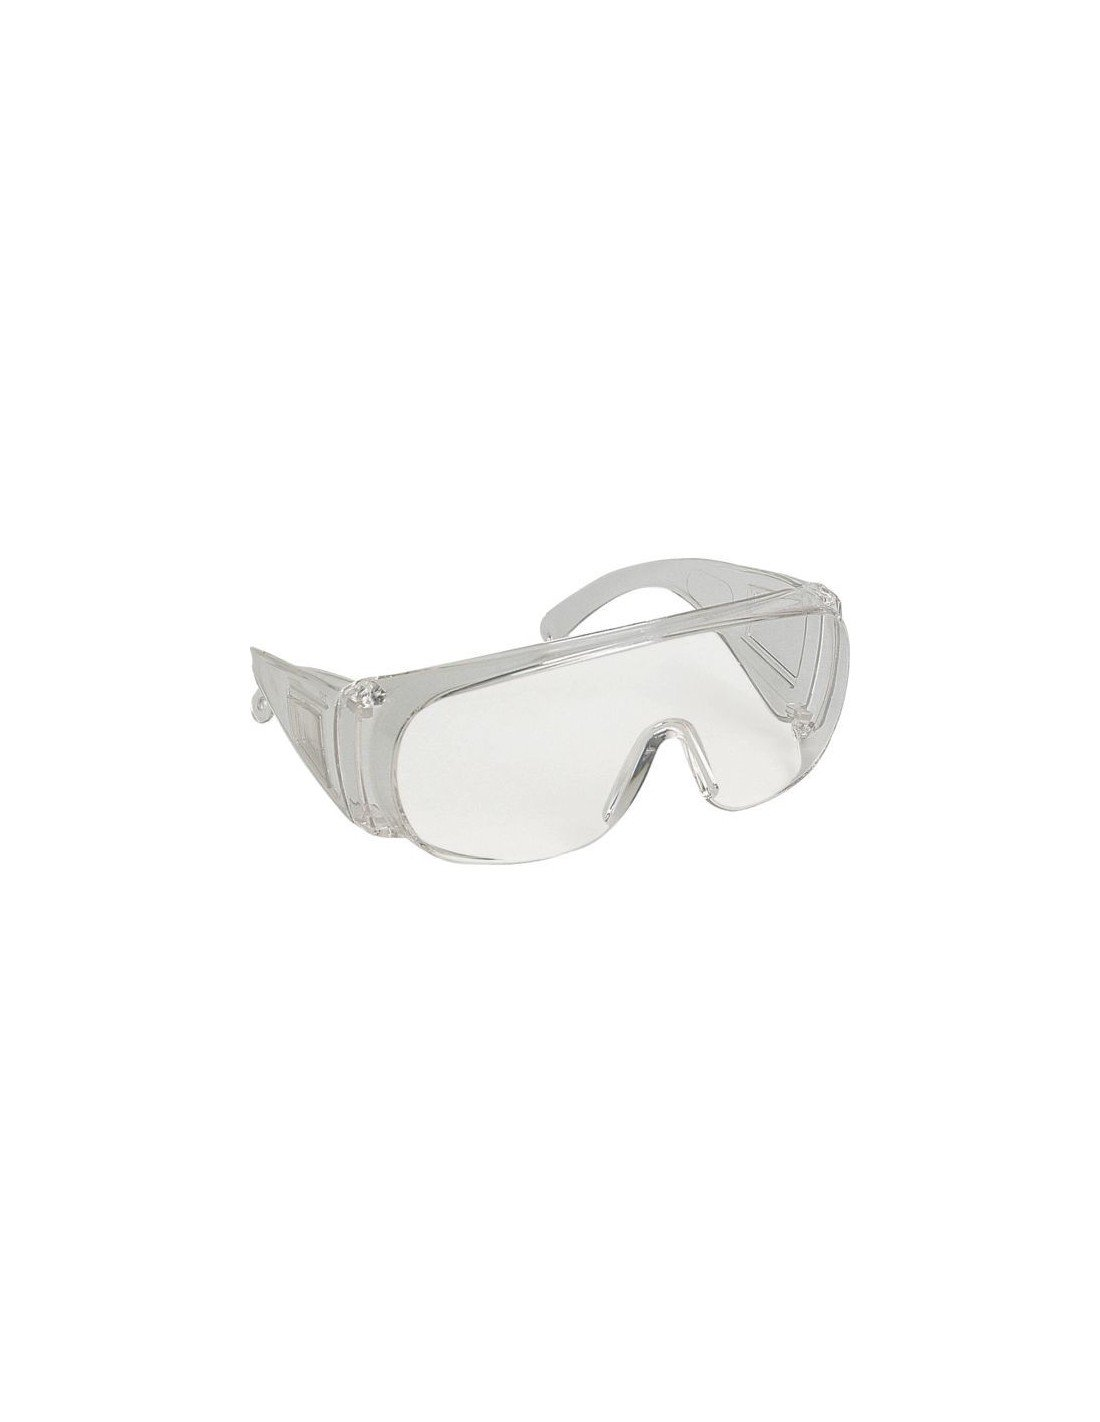 Lux Optical - Safety Glasses -VISILUX